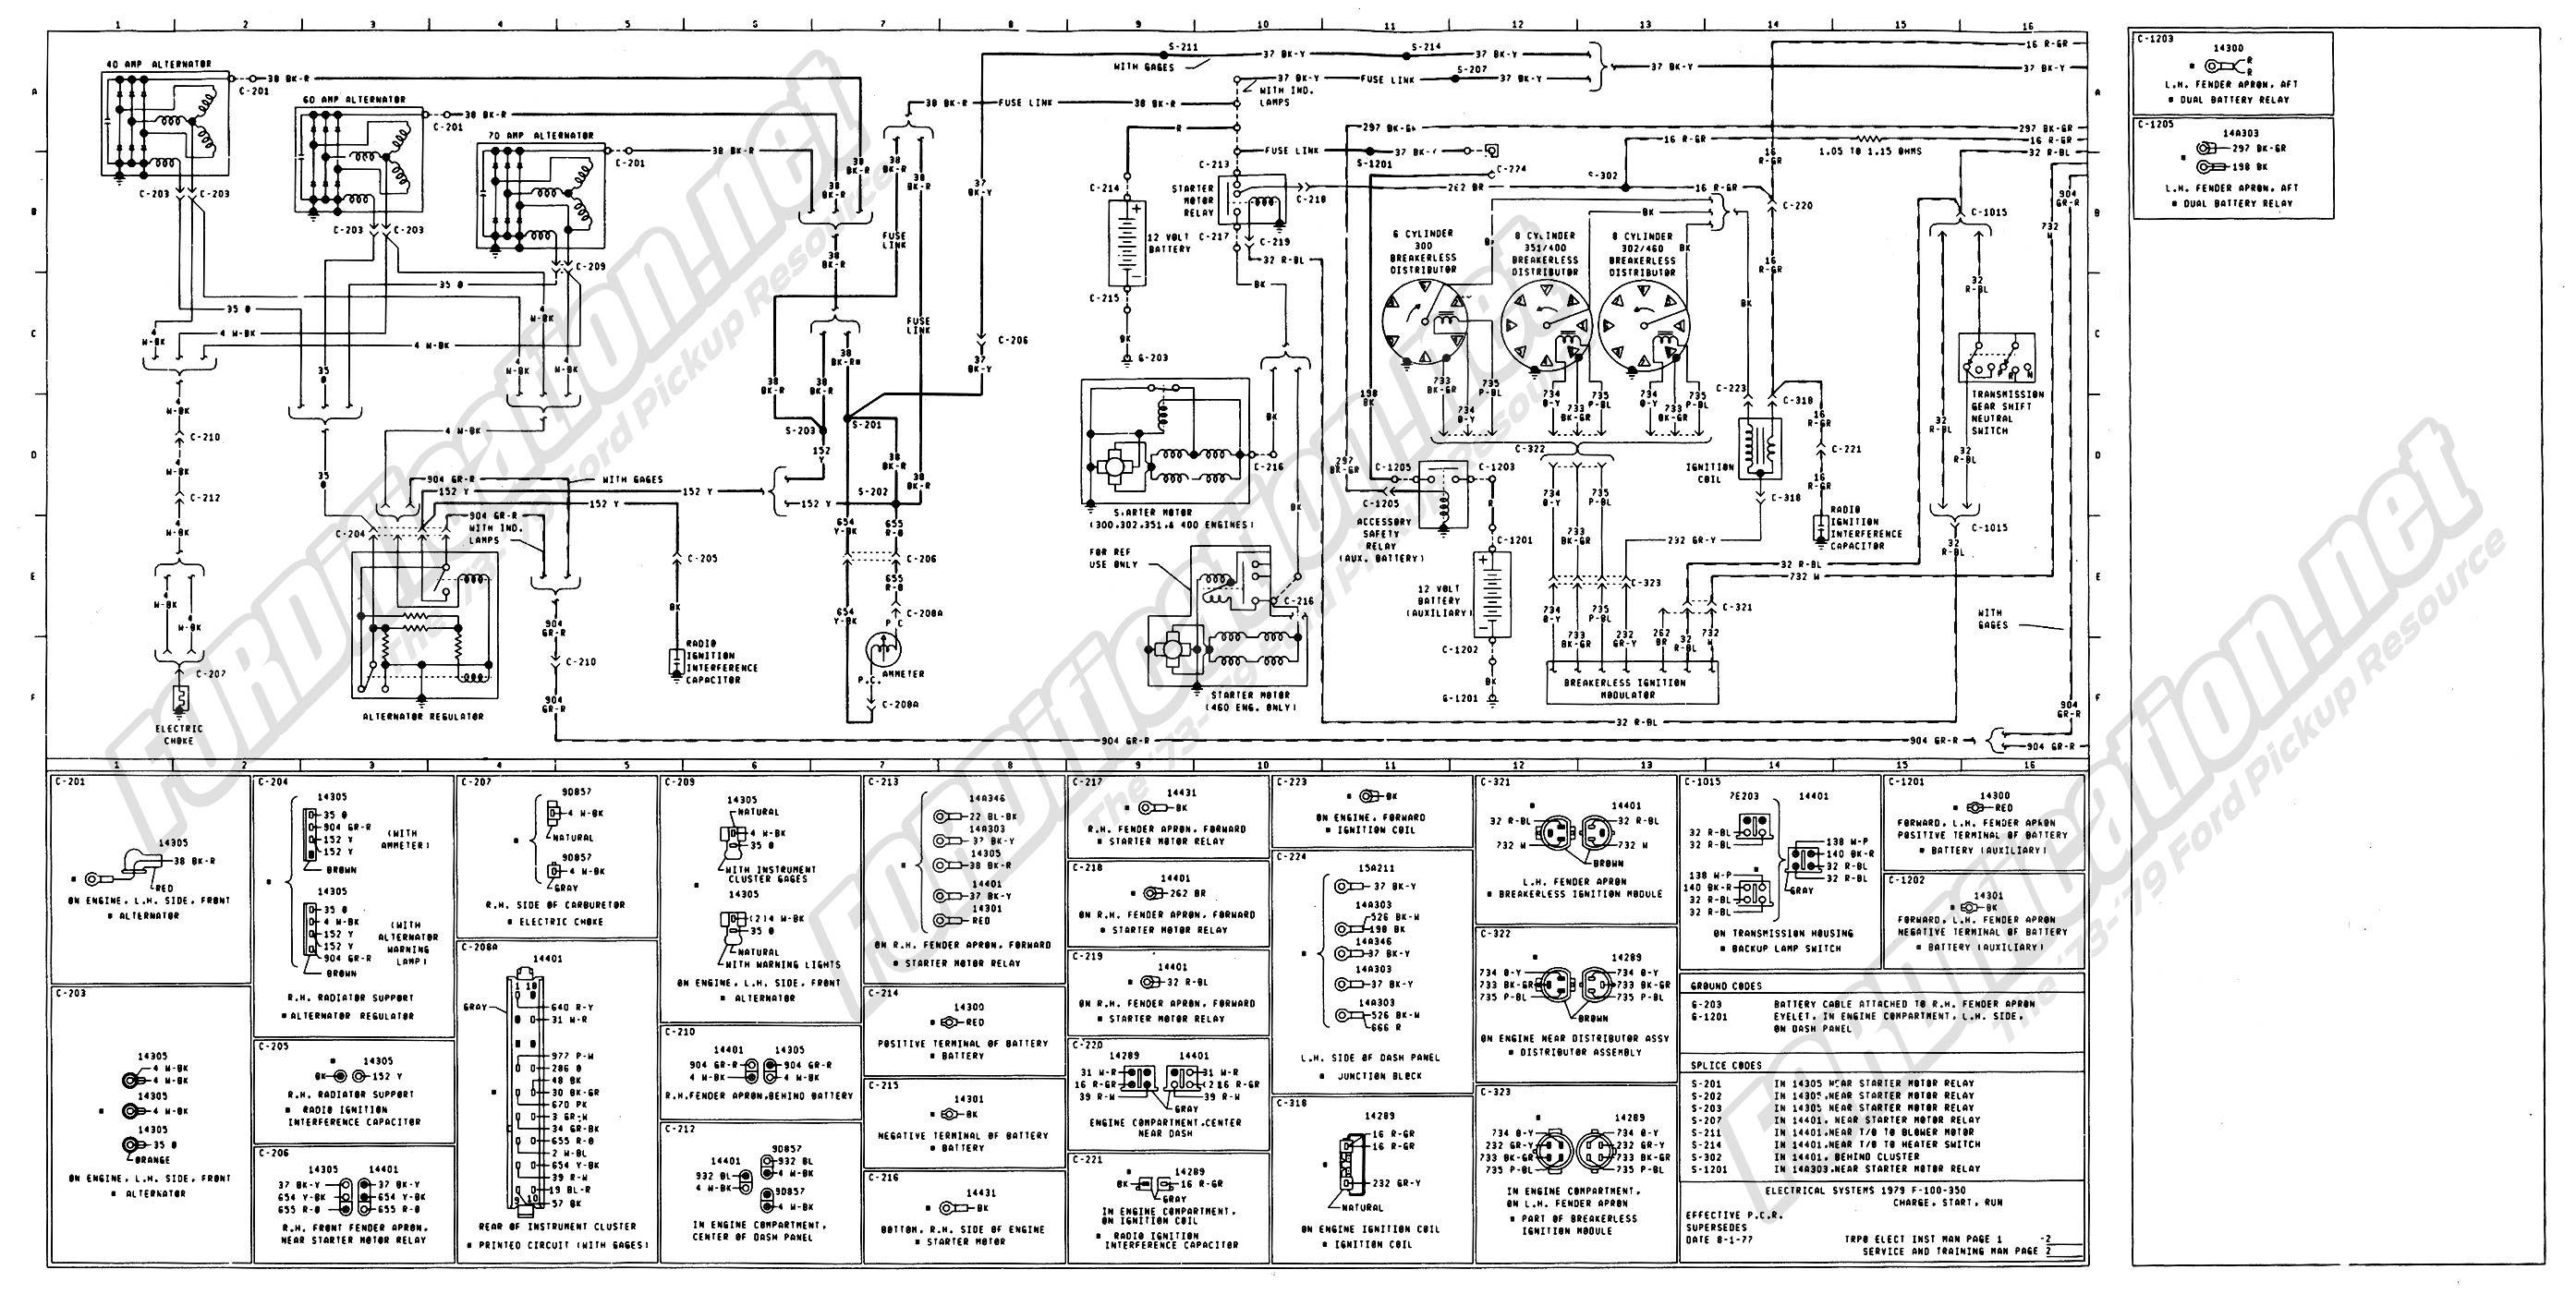 1978 F150 Wiring Diagram Schematics Diagrams International 1700 Loadstar 1973 1979 Ford Truck Fordification Net Rh F100 Starter Tail Light